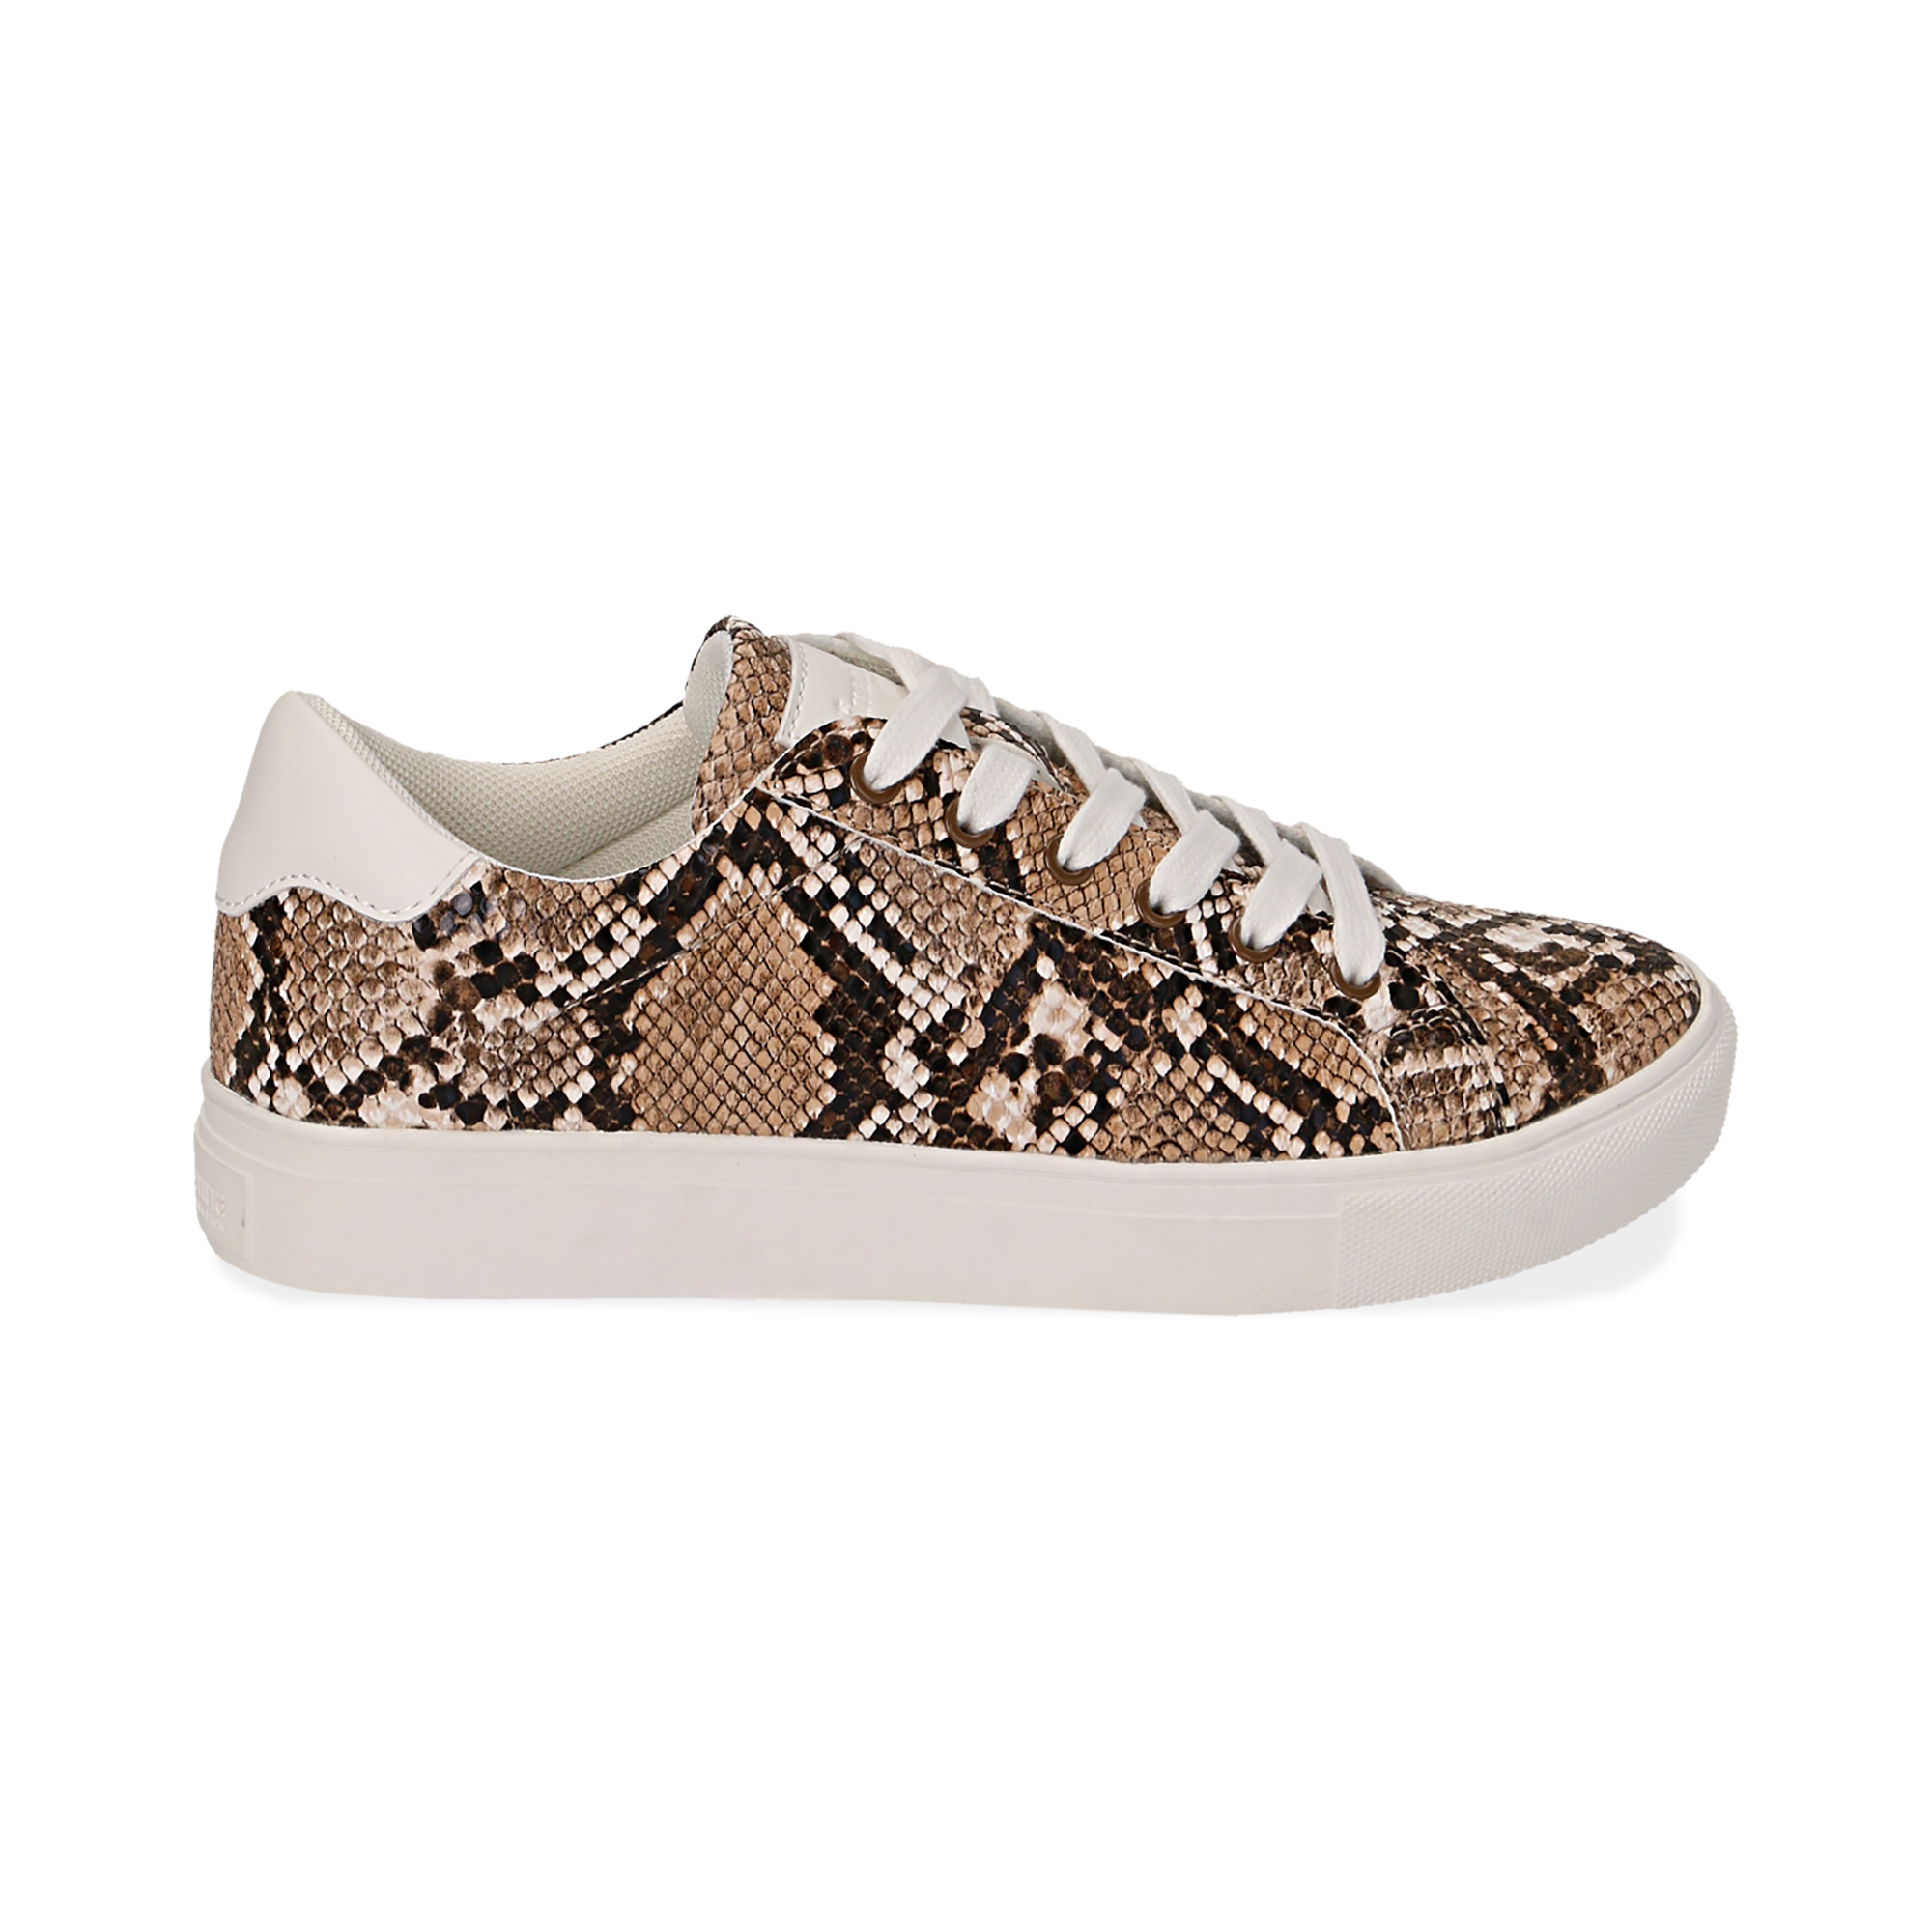 Sneakers en ecopiel con estampado de serpiente color beige